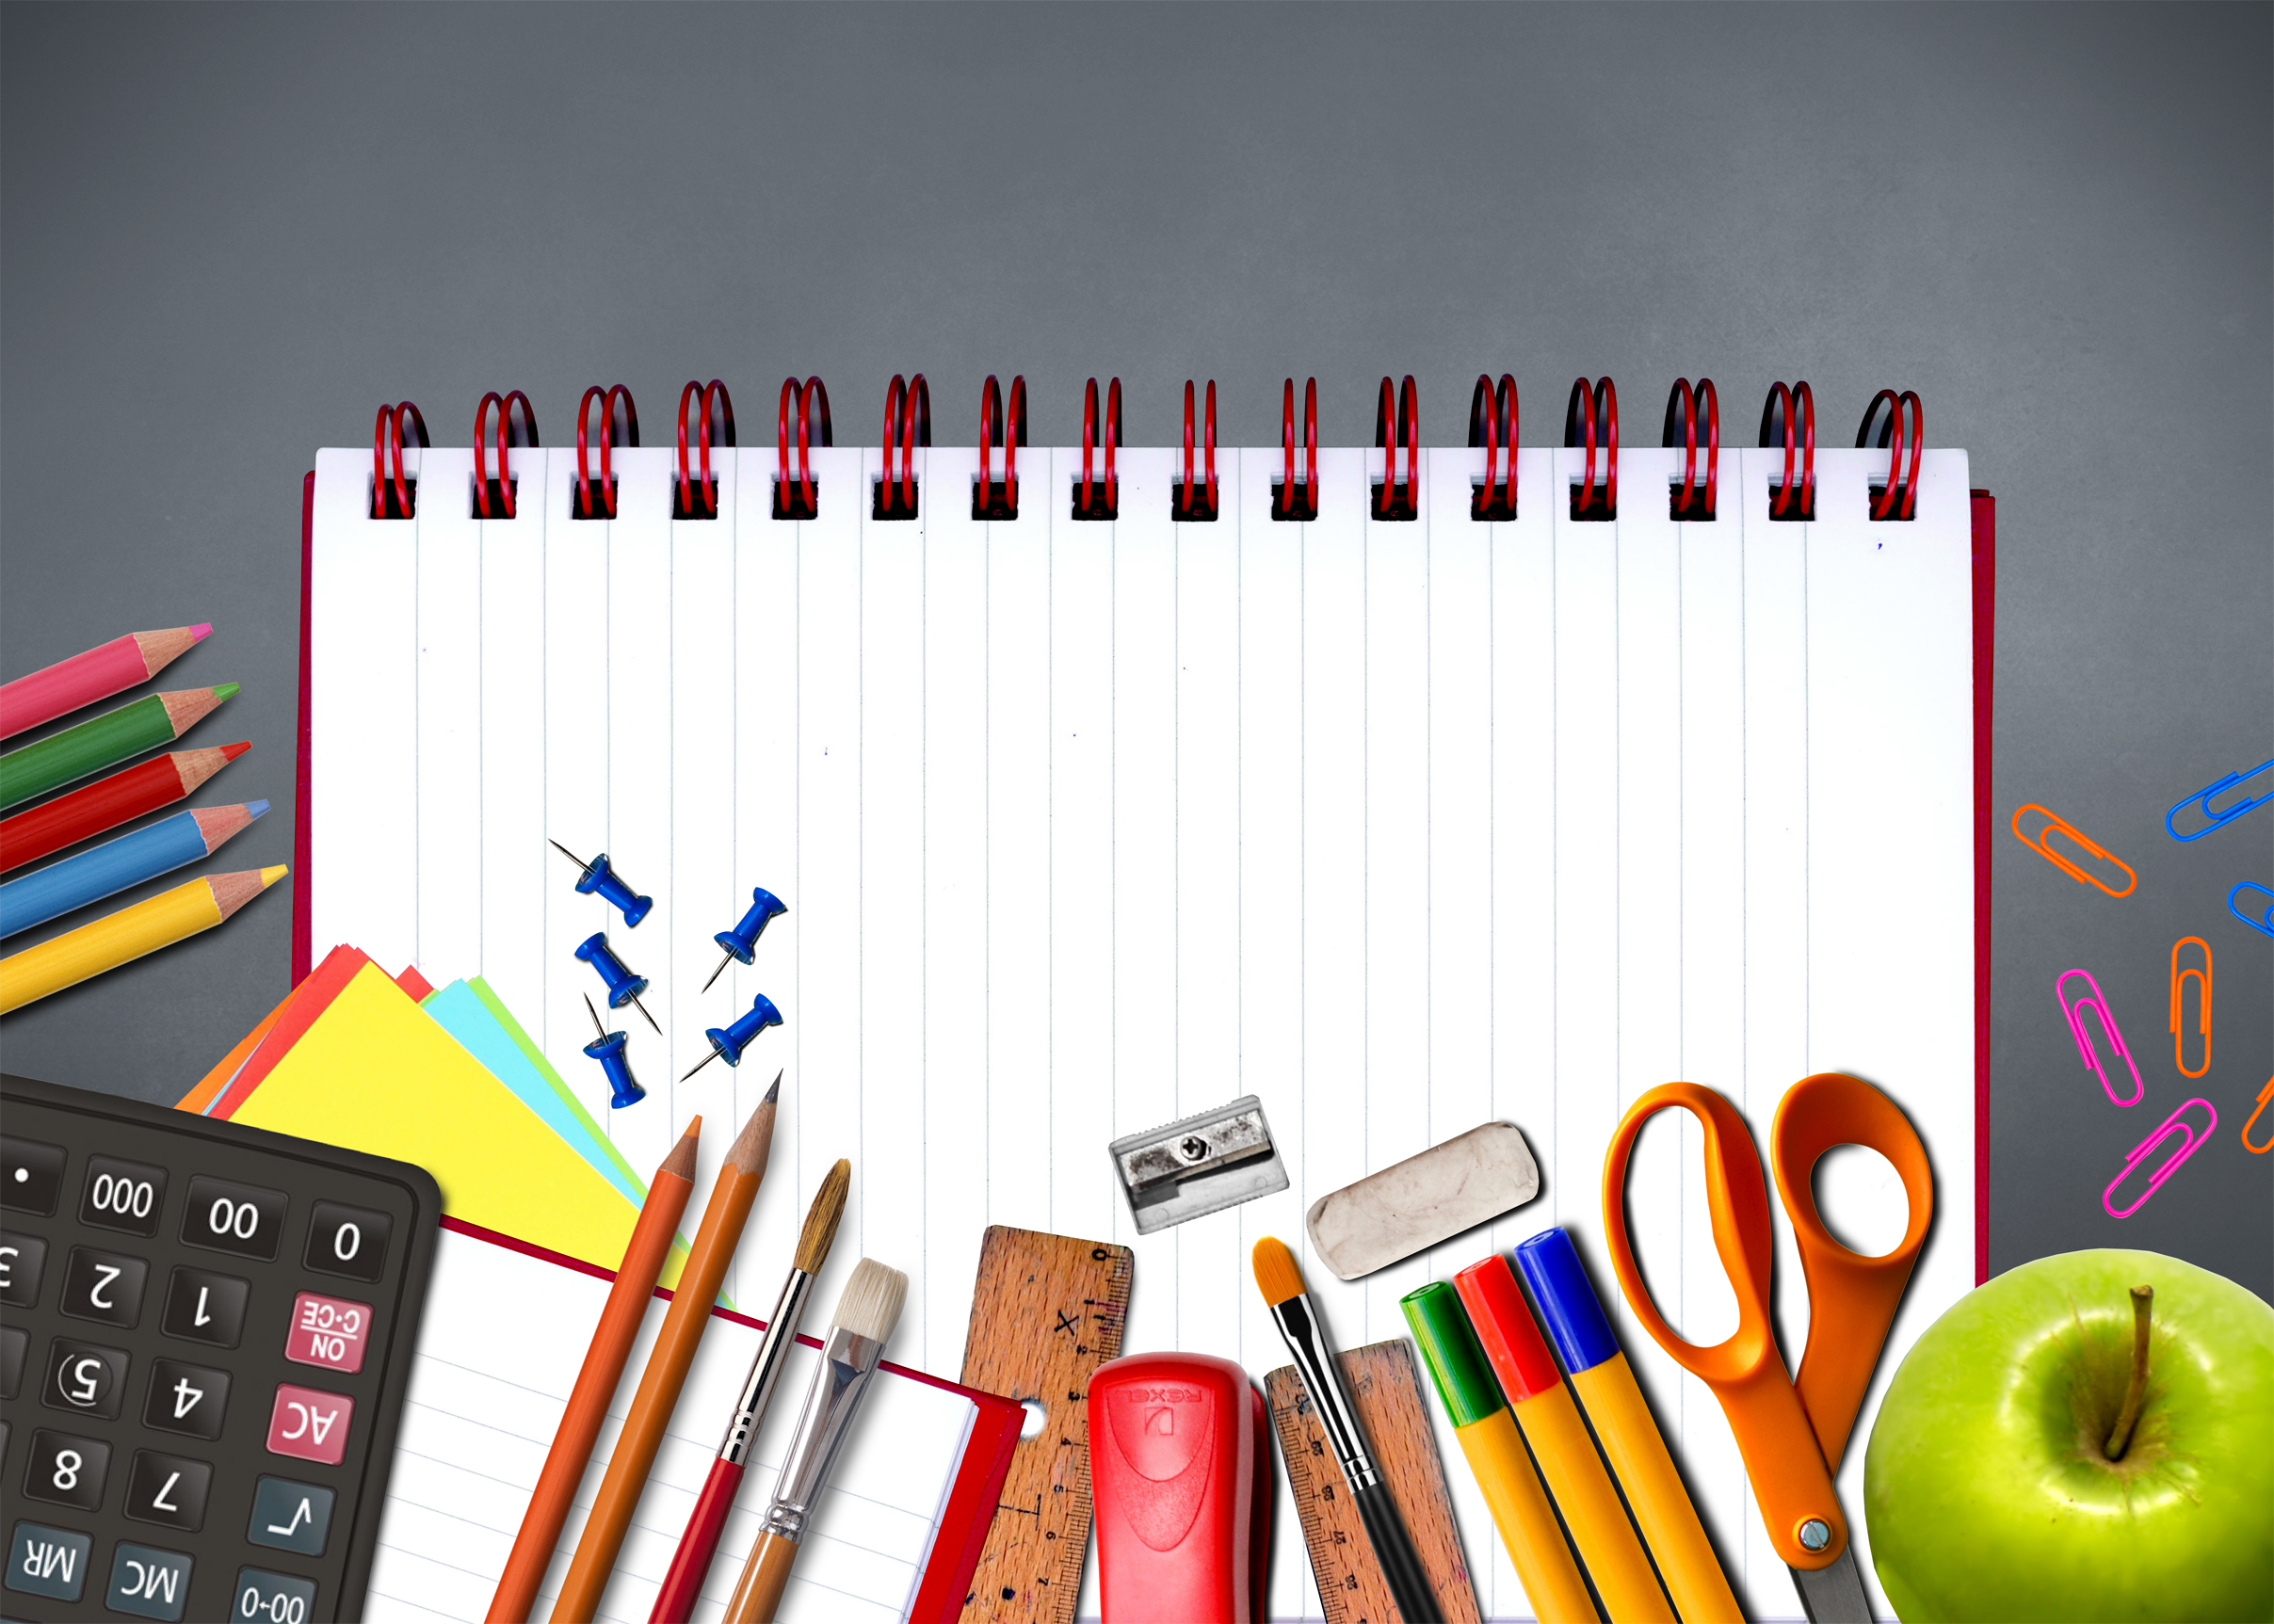 School supplies on notebook - study and learning concept photo